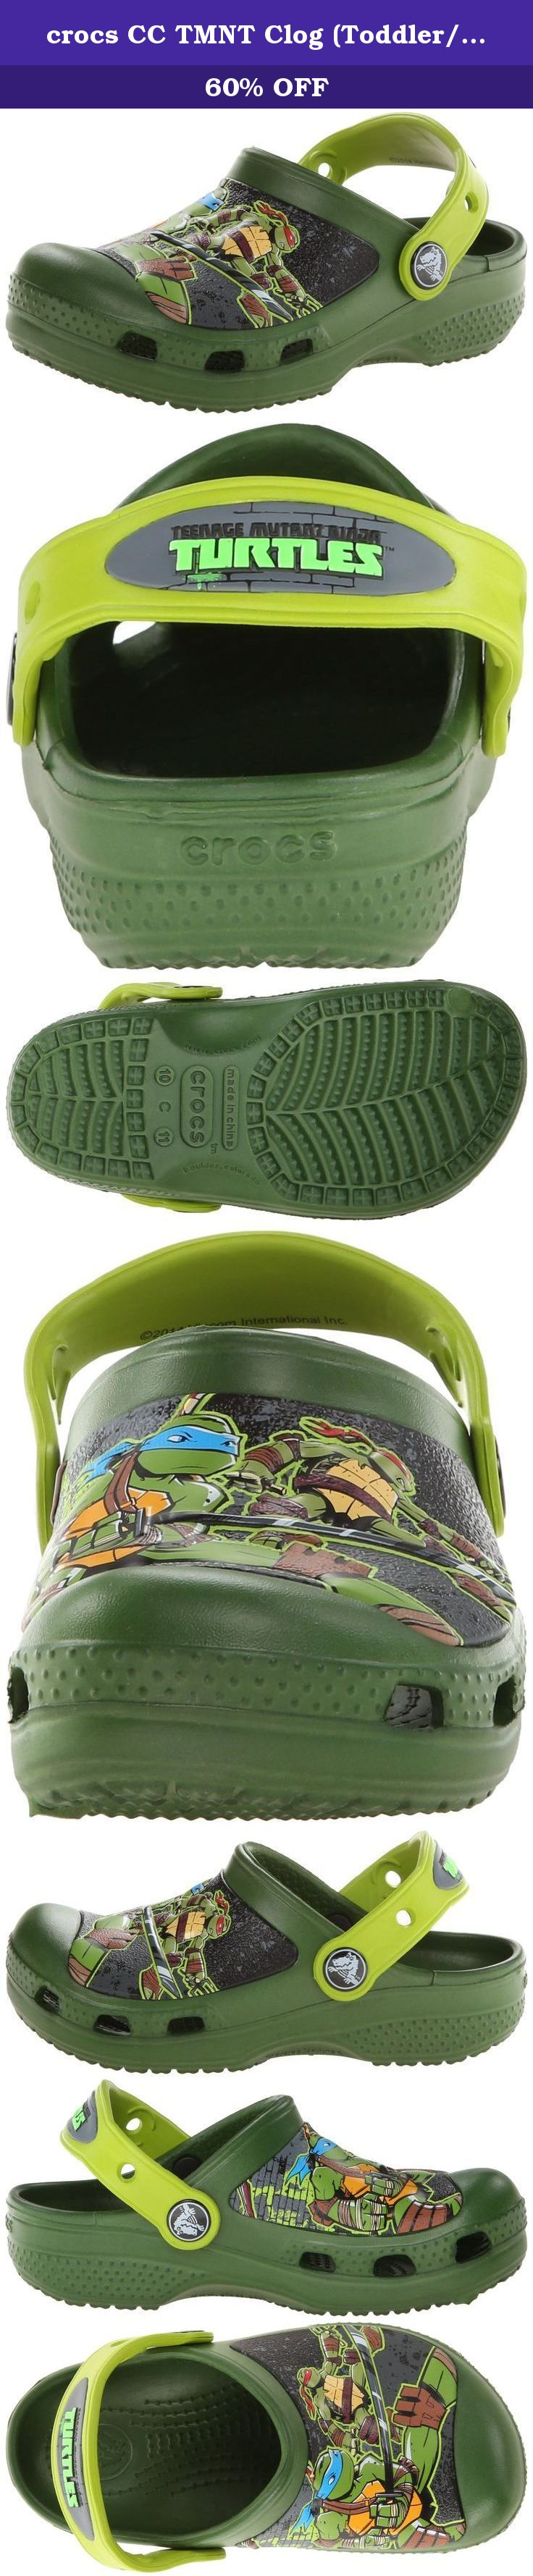 3772a800478 crocs CC TMNT Clog (Toddler/Little Kid/Big Kid),Seaweed/Volt Green,4 M US  Toddler. Crocs CC TMNT Clog - Sea Weed/Volt Green.